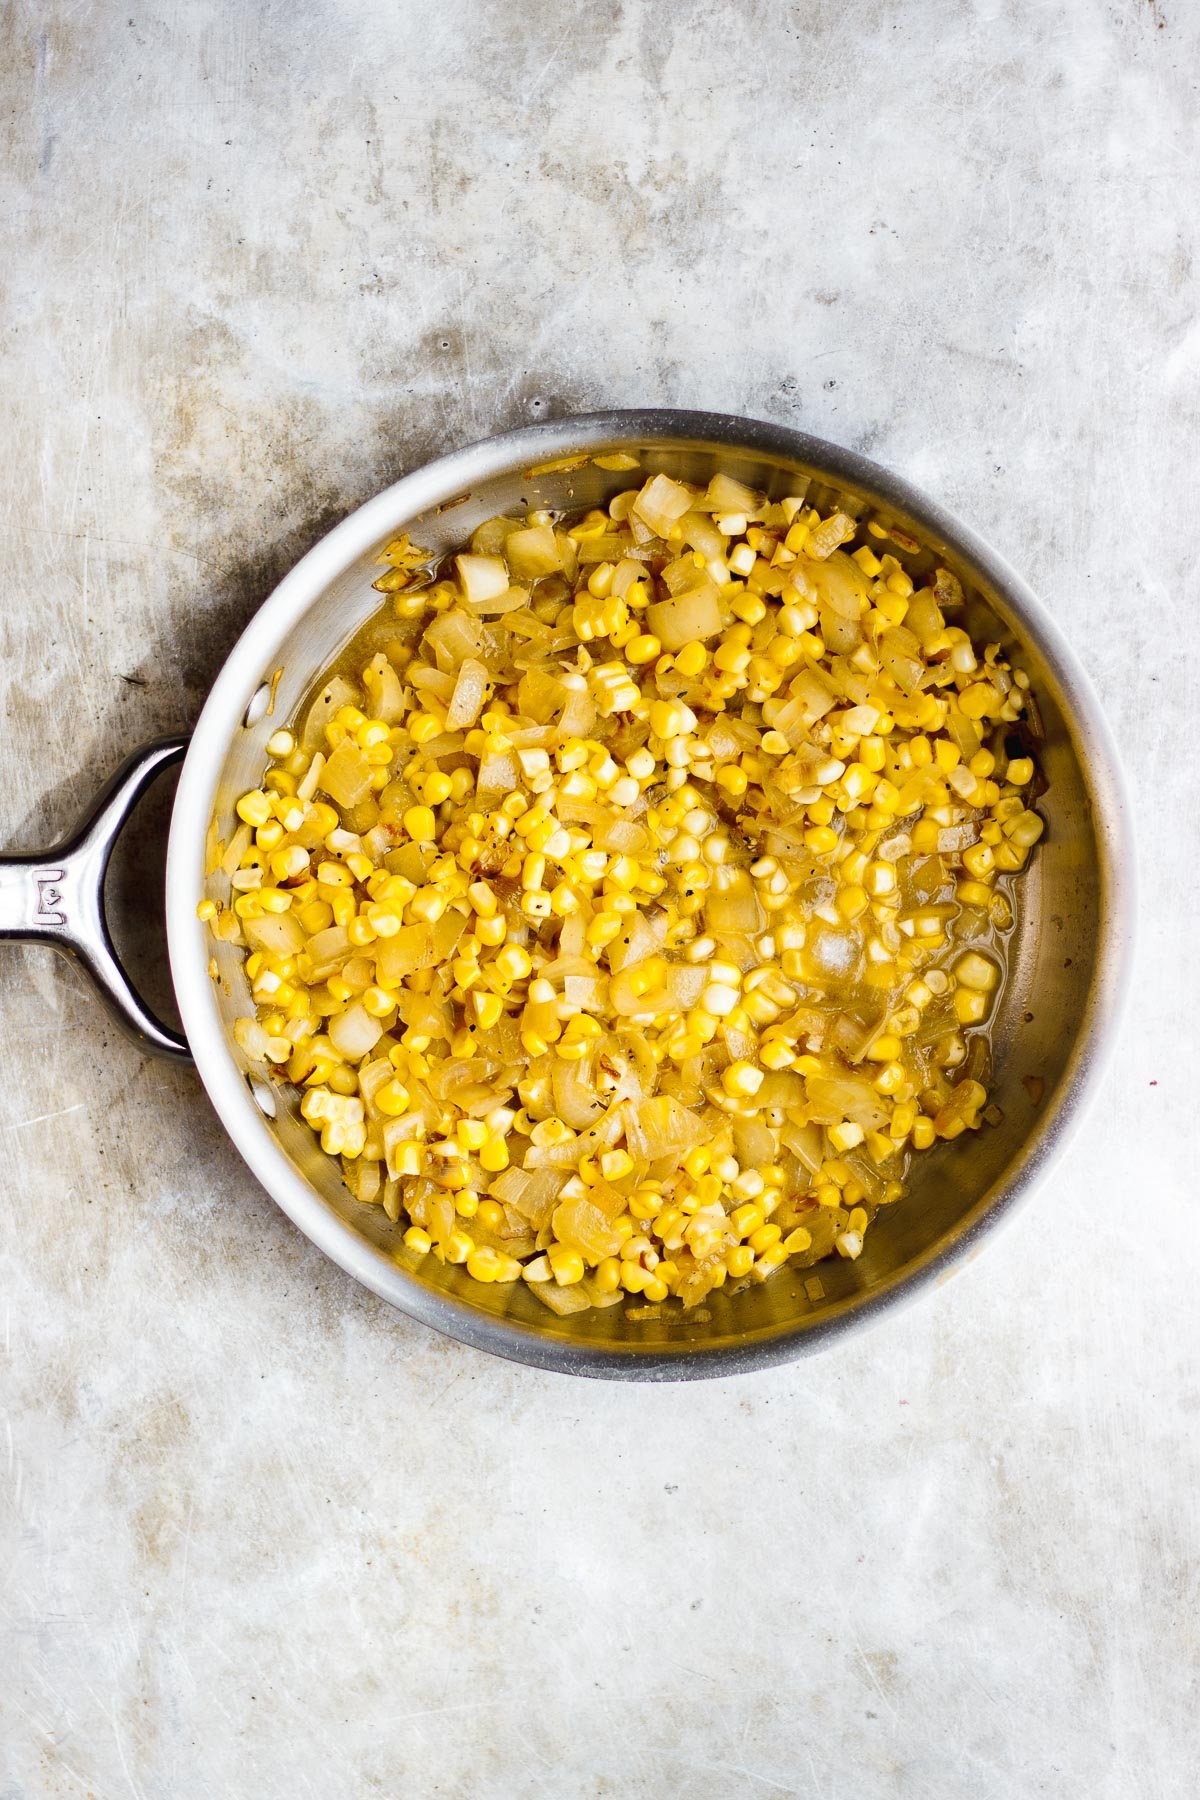 corn and onion in a skillet